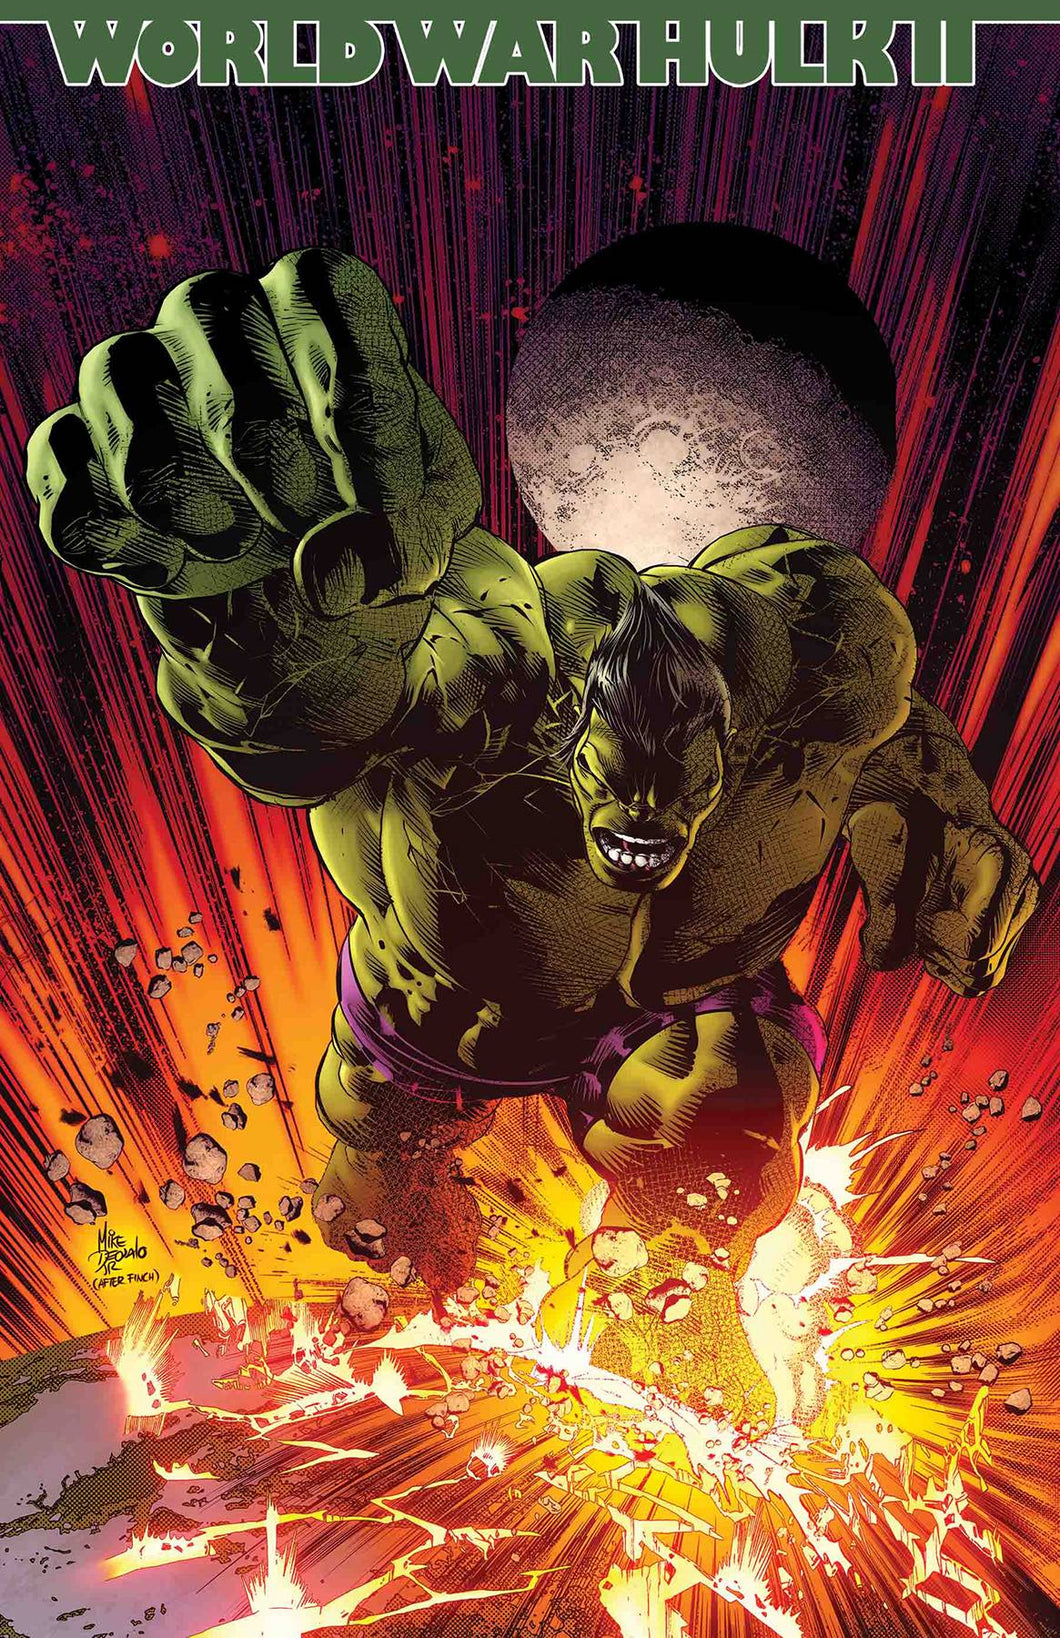 INCREDIBLE HULK #714 LEG WW (FOC 02/26/18)